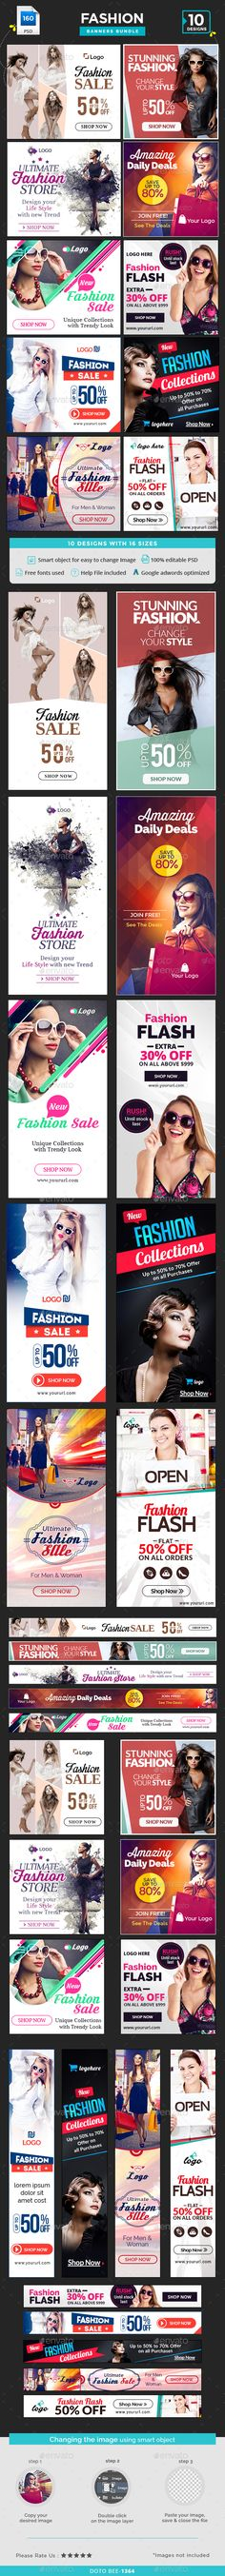 Fashion Banners Bundle - 10 Sets - 160 Banners Template PSD. Download here: http://graphicriver.net/item/fashion-banners-bundle-10-sets-160-banners/16048167?ref=ksioks